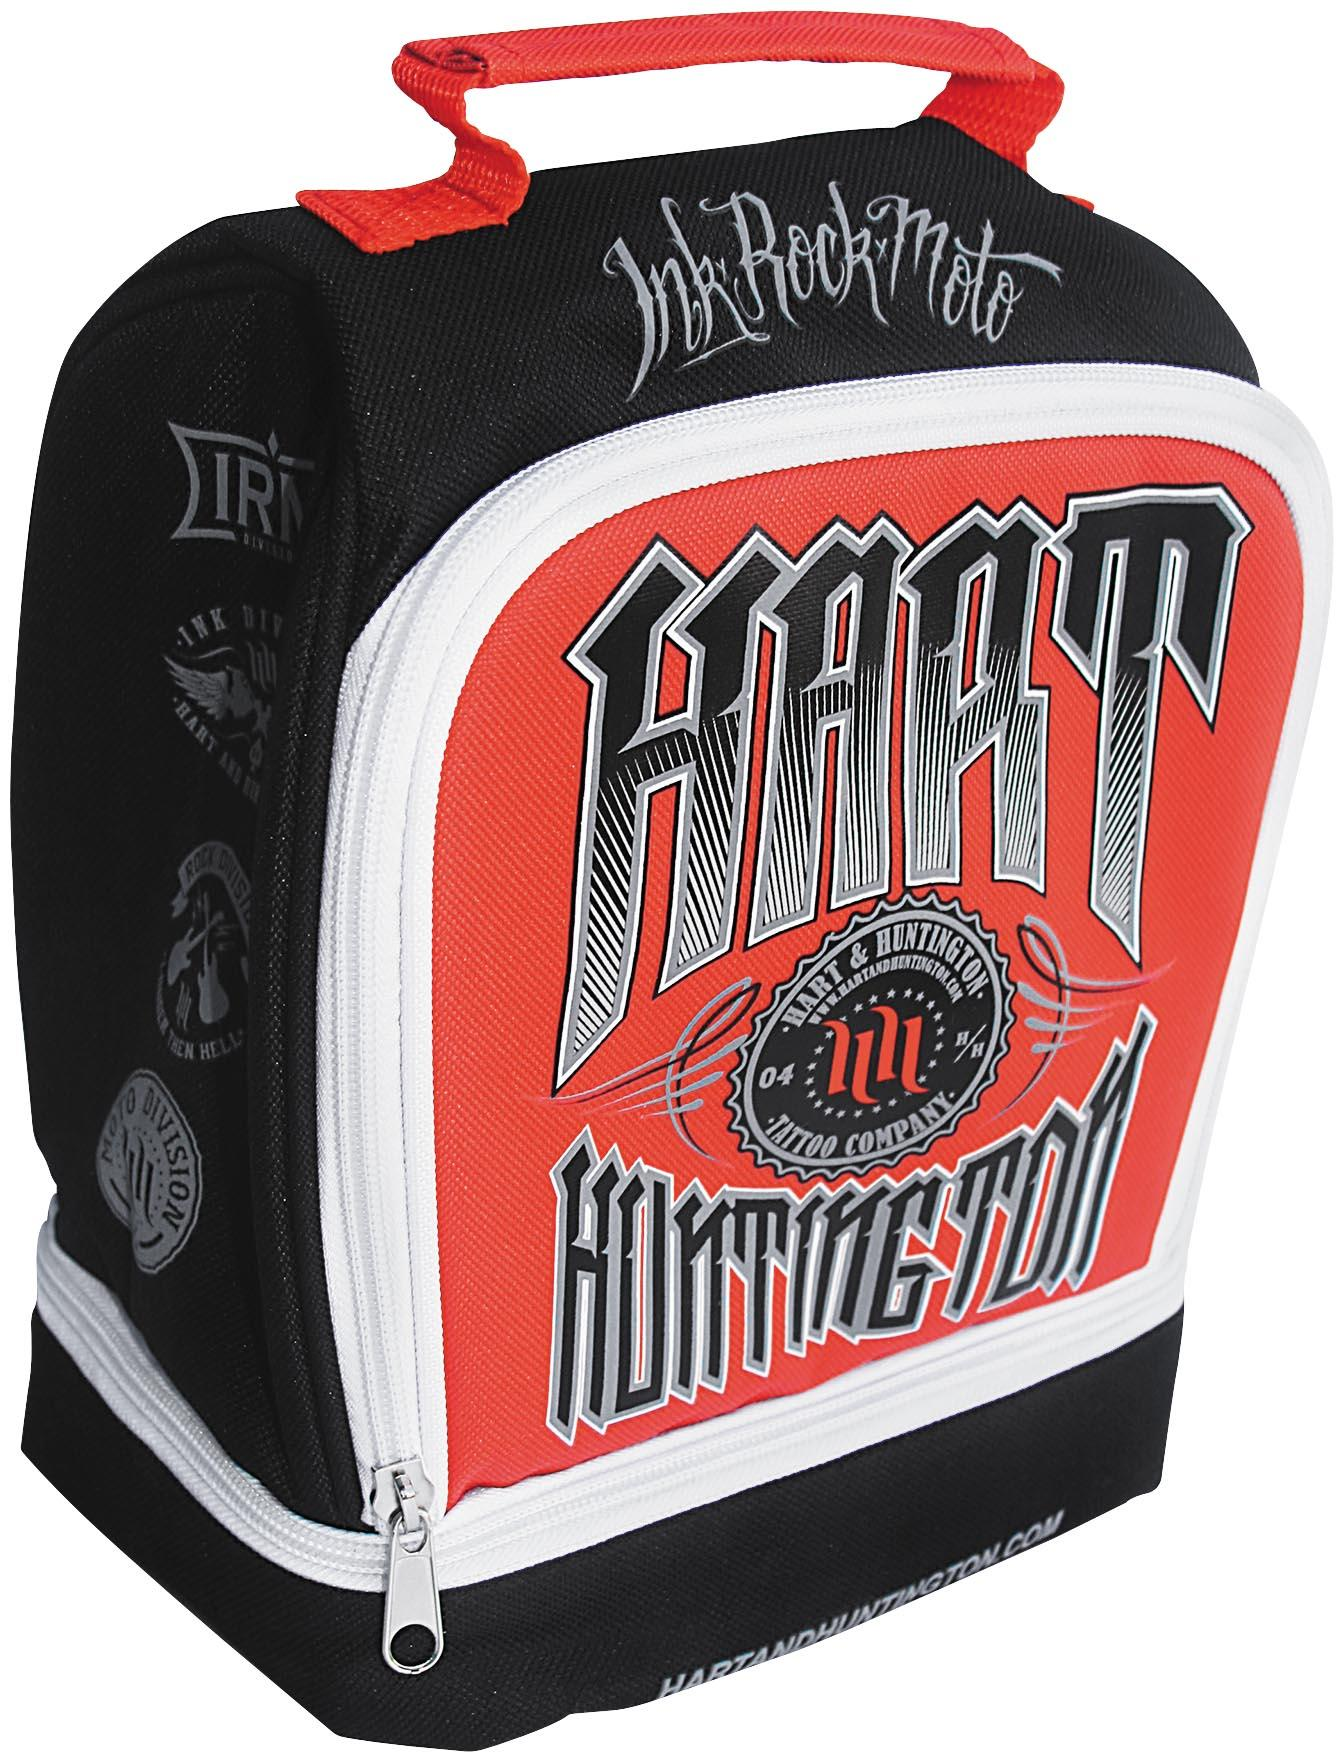 Smooth Industries Smooth Hart and Huntington Lunch Box